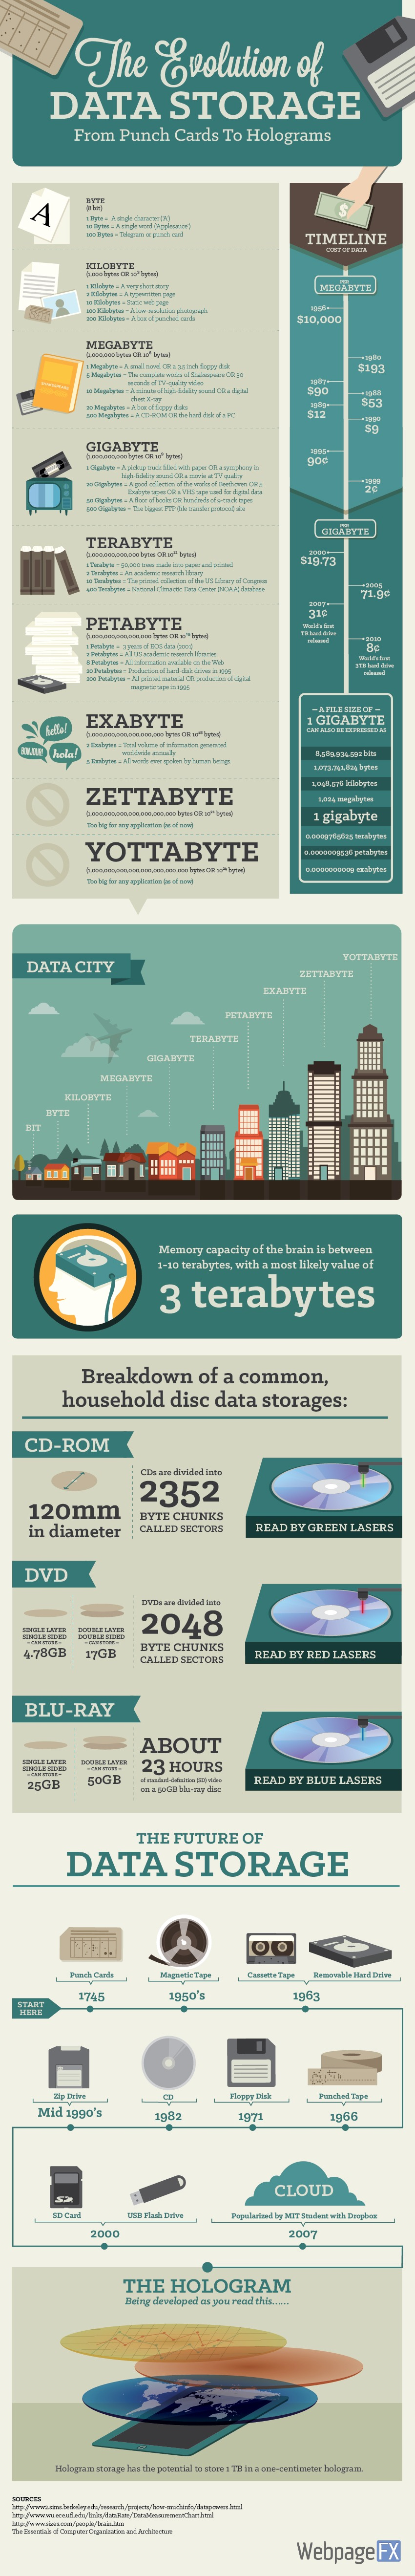 Infographic: The Evolution of Data Storage - YourDailyTech